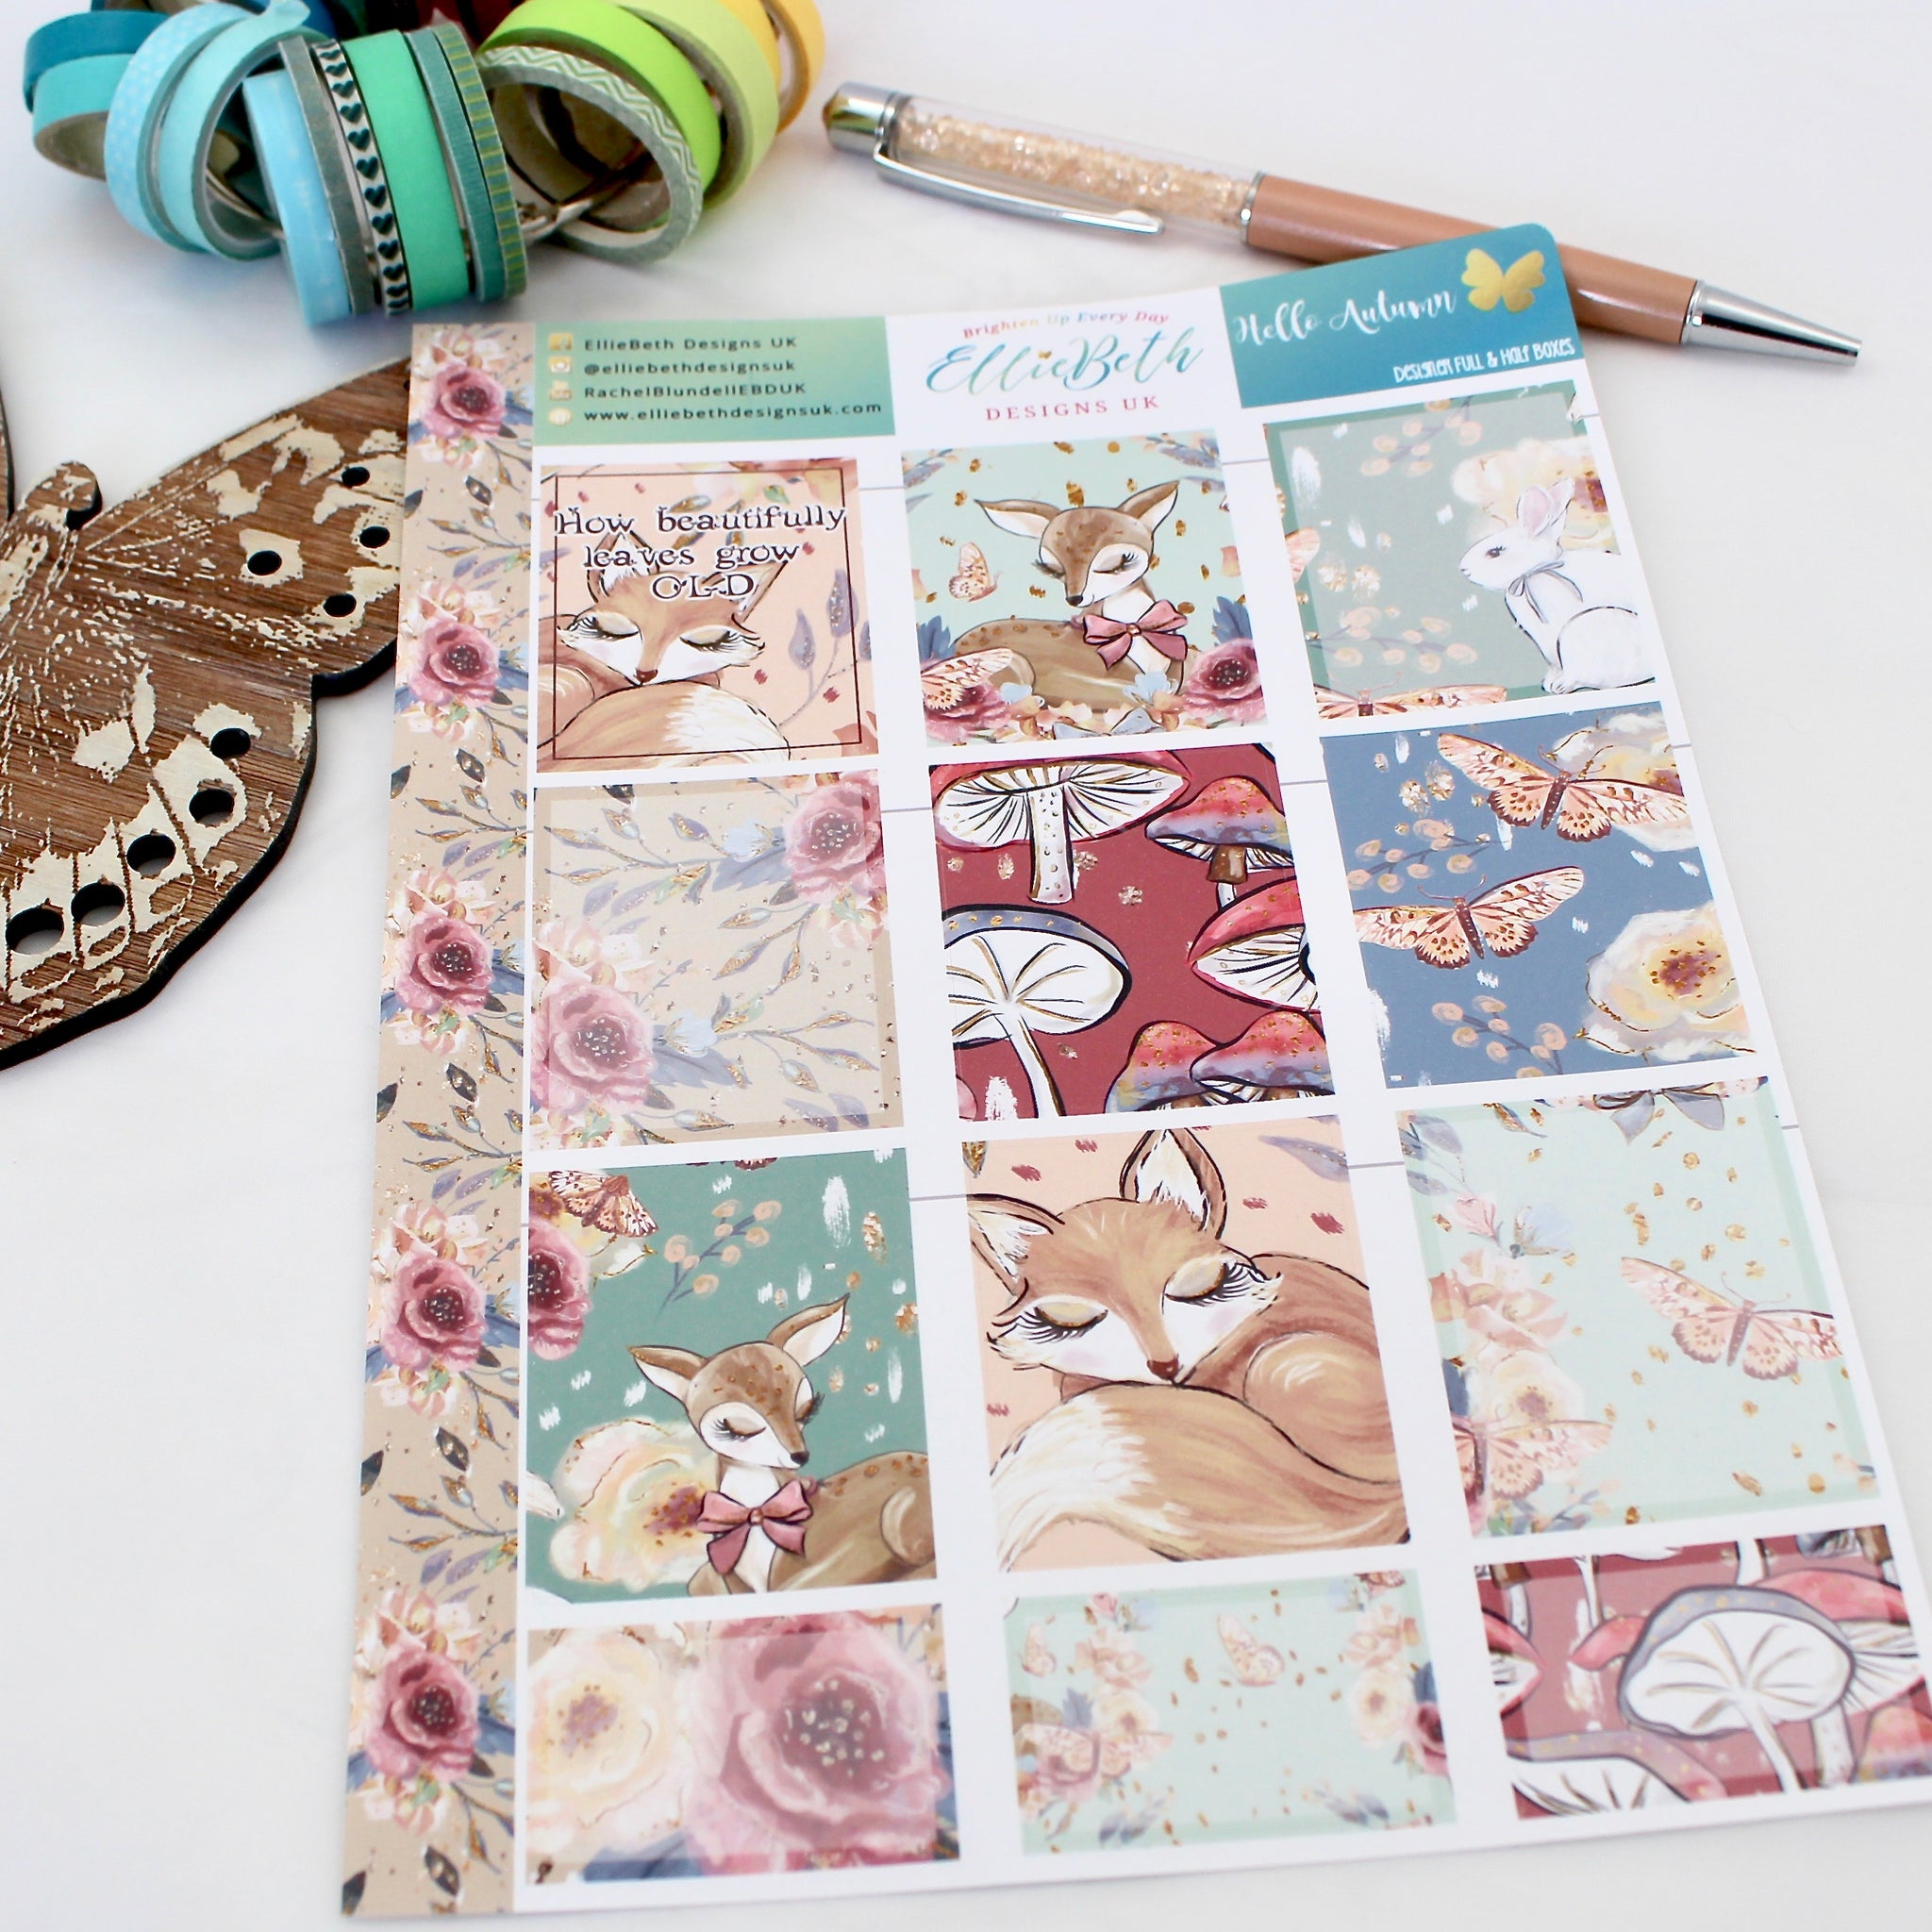 'Hello Autumn' - Designer Full and Half Boxes Sheet -  A5 binder ready planner stickers